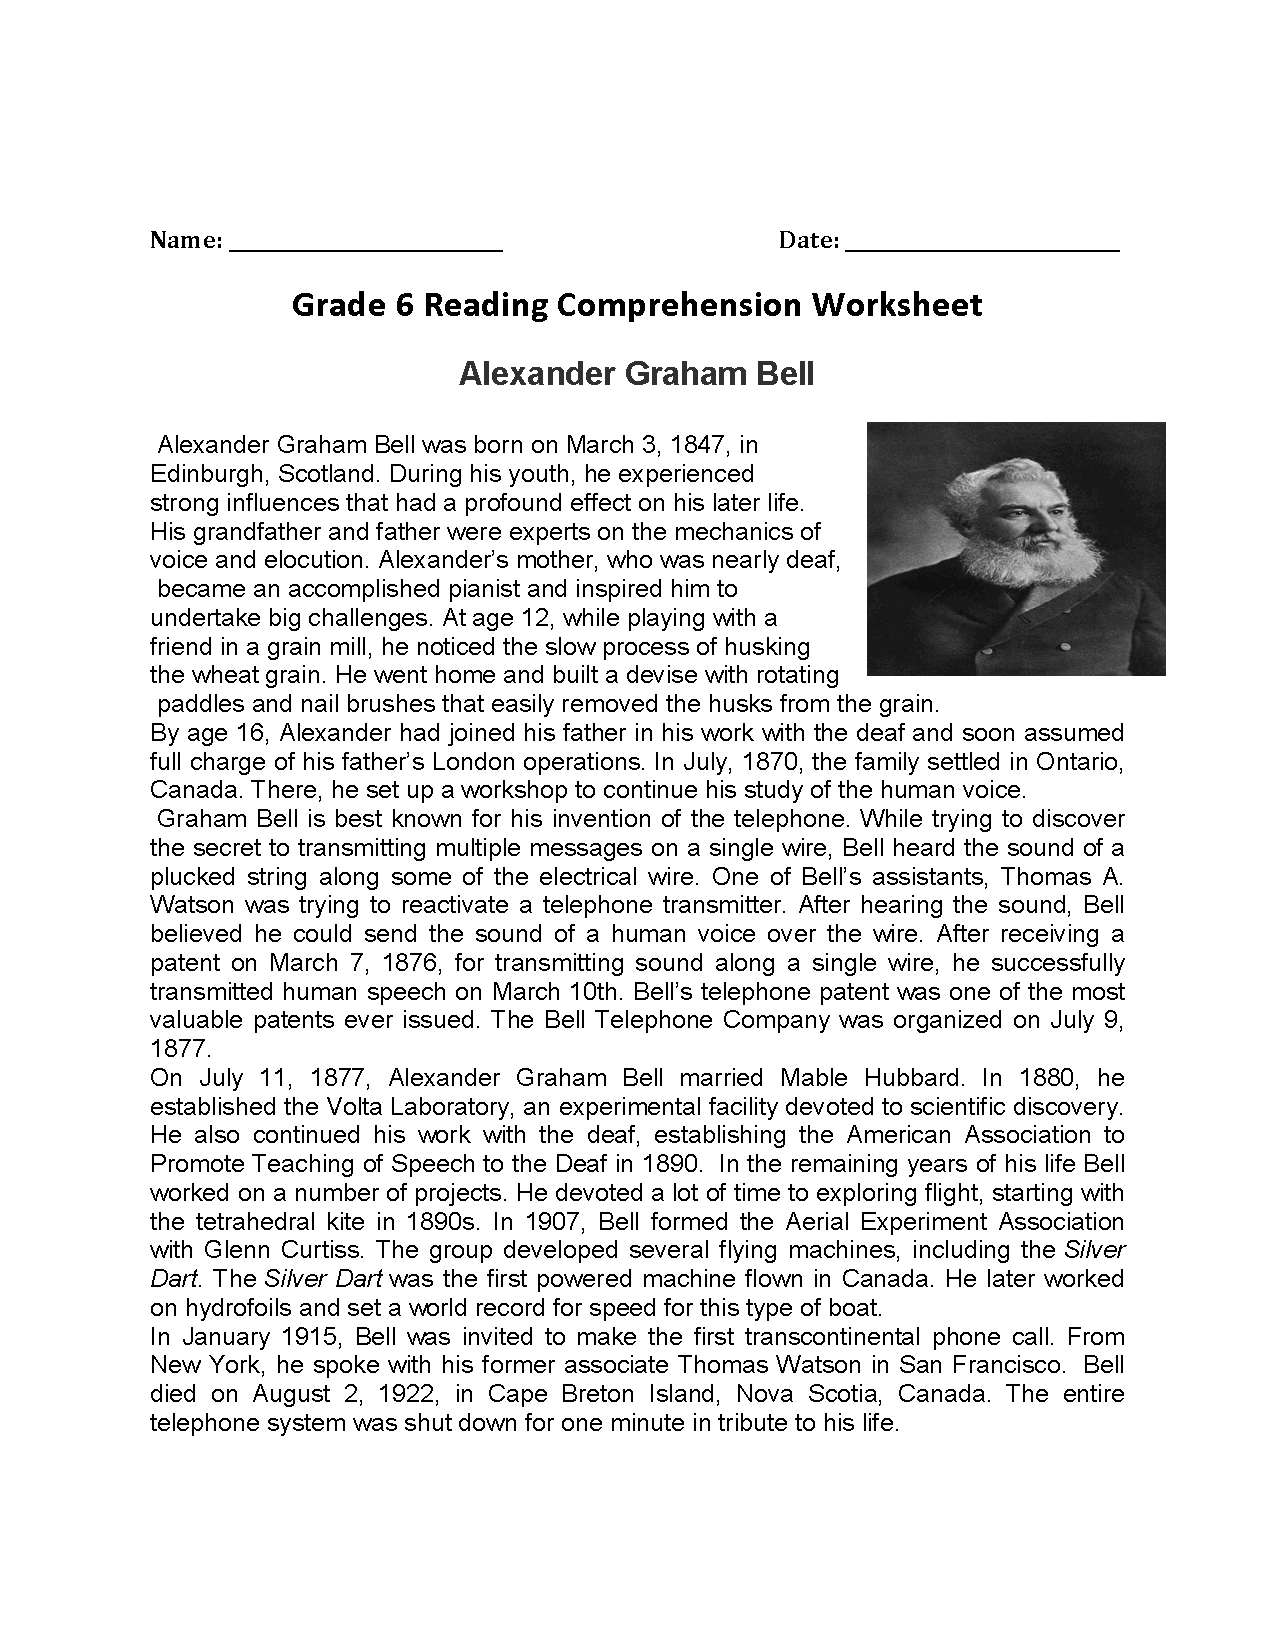 Worksheets 6th Grade Worksheets Reading reading worksheets sixth grade alexander graham bellsixth worksheets